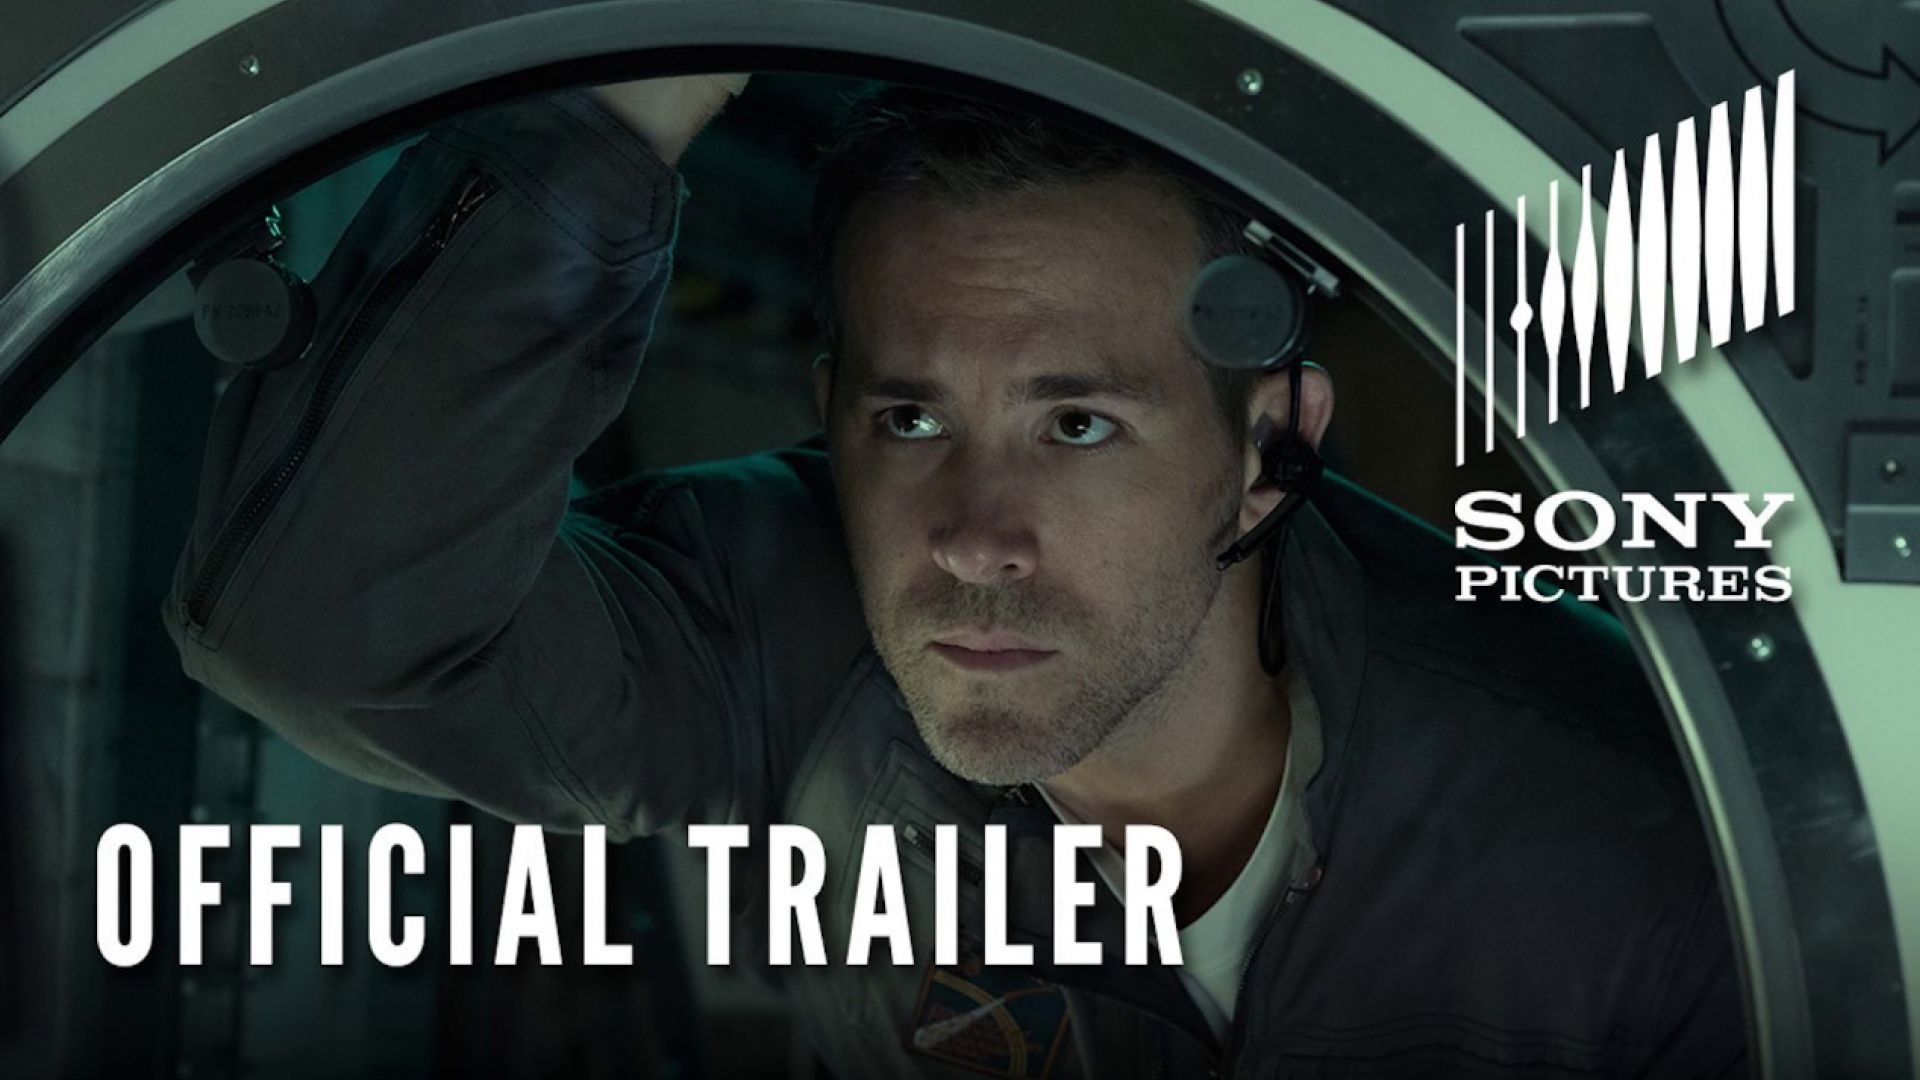 Official trailer for 'Life' starring Ryan Reynolds and Jake